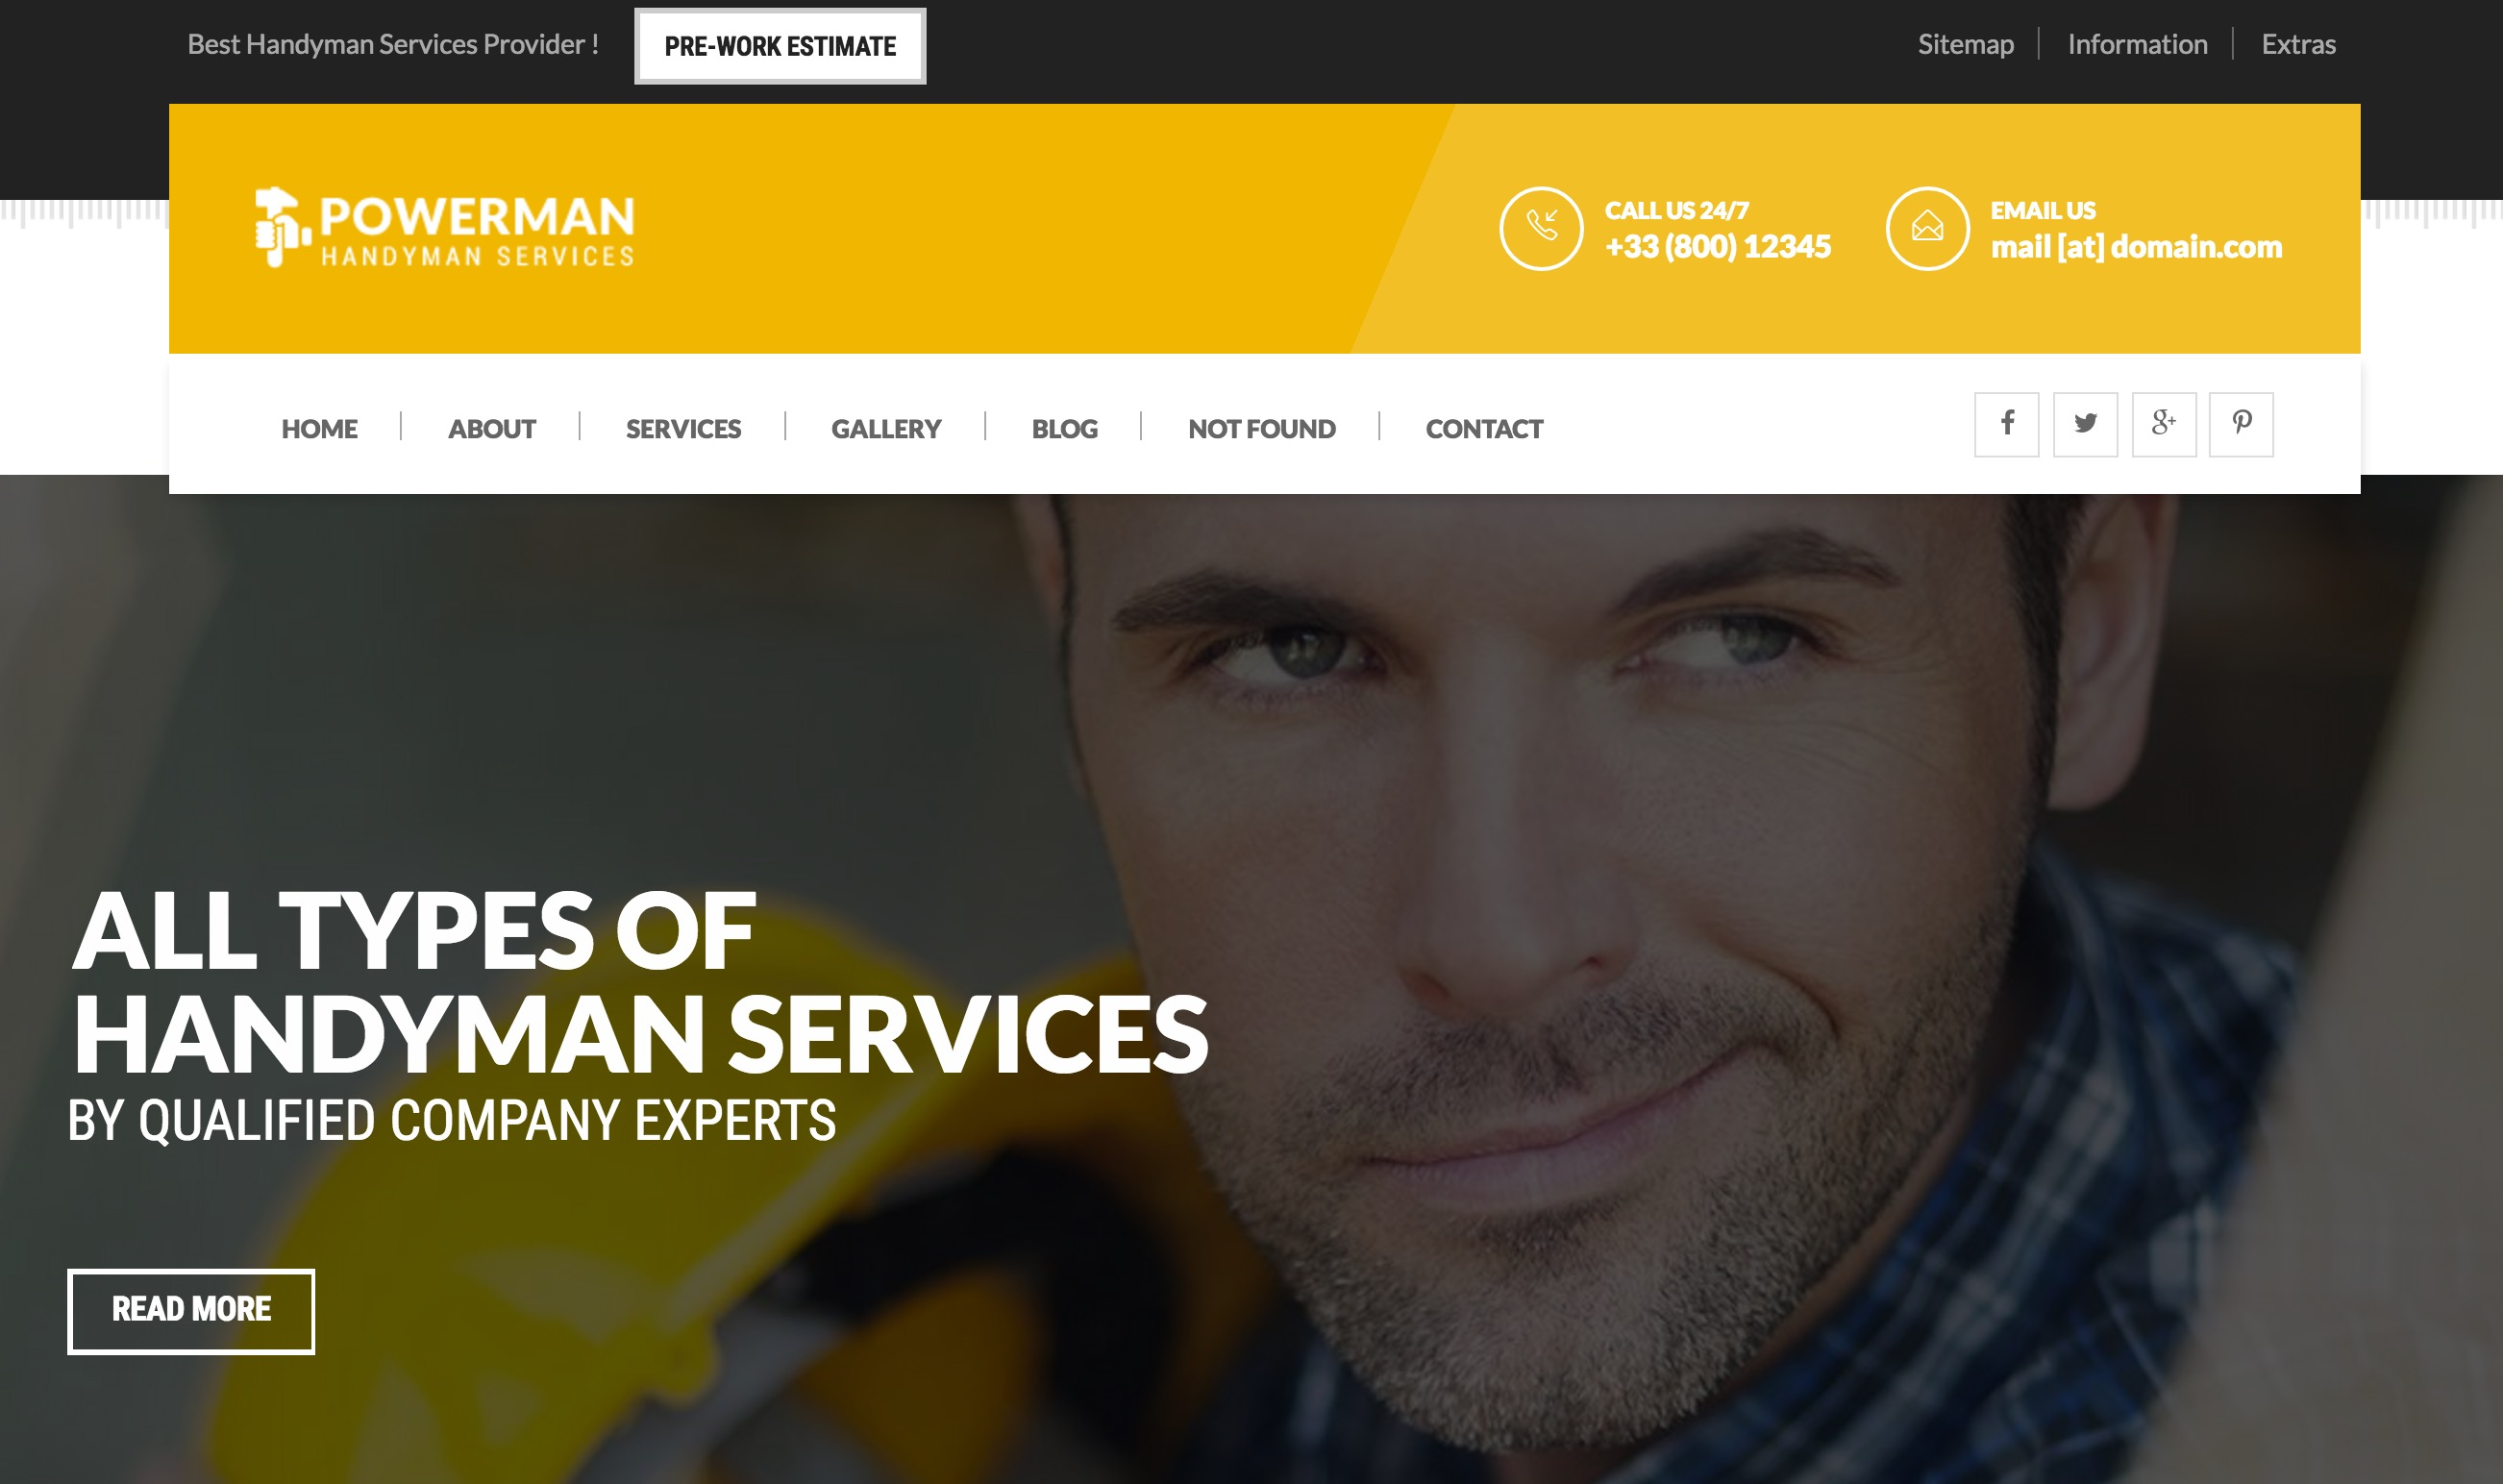 POWERMAN - Handyman Services Drupal Theme